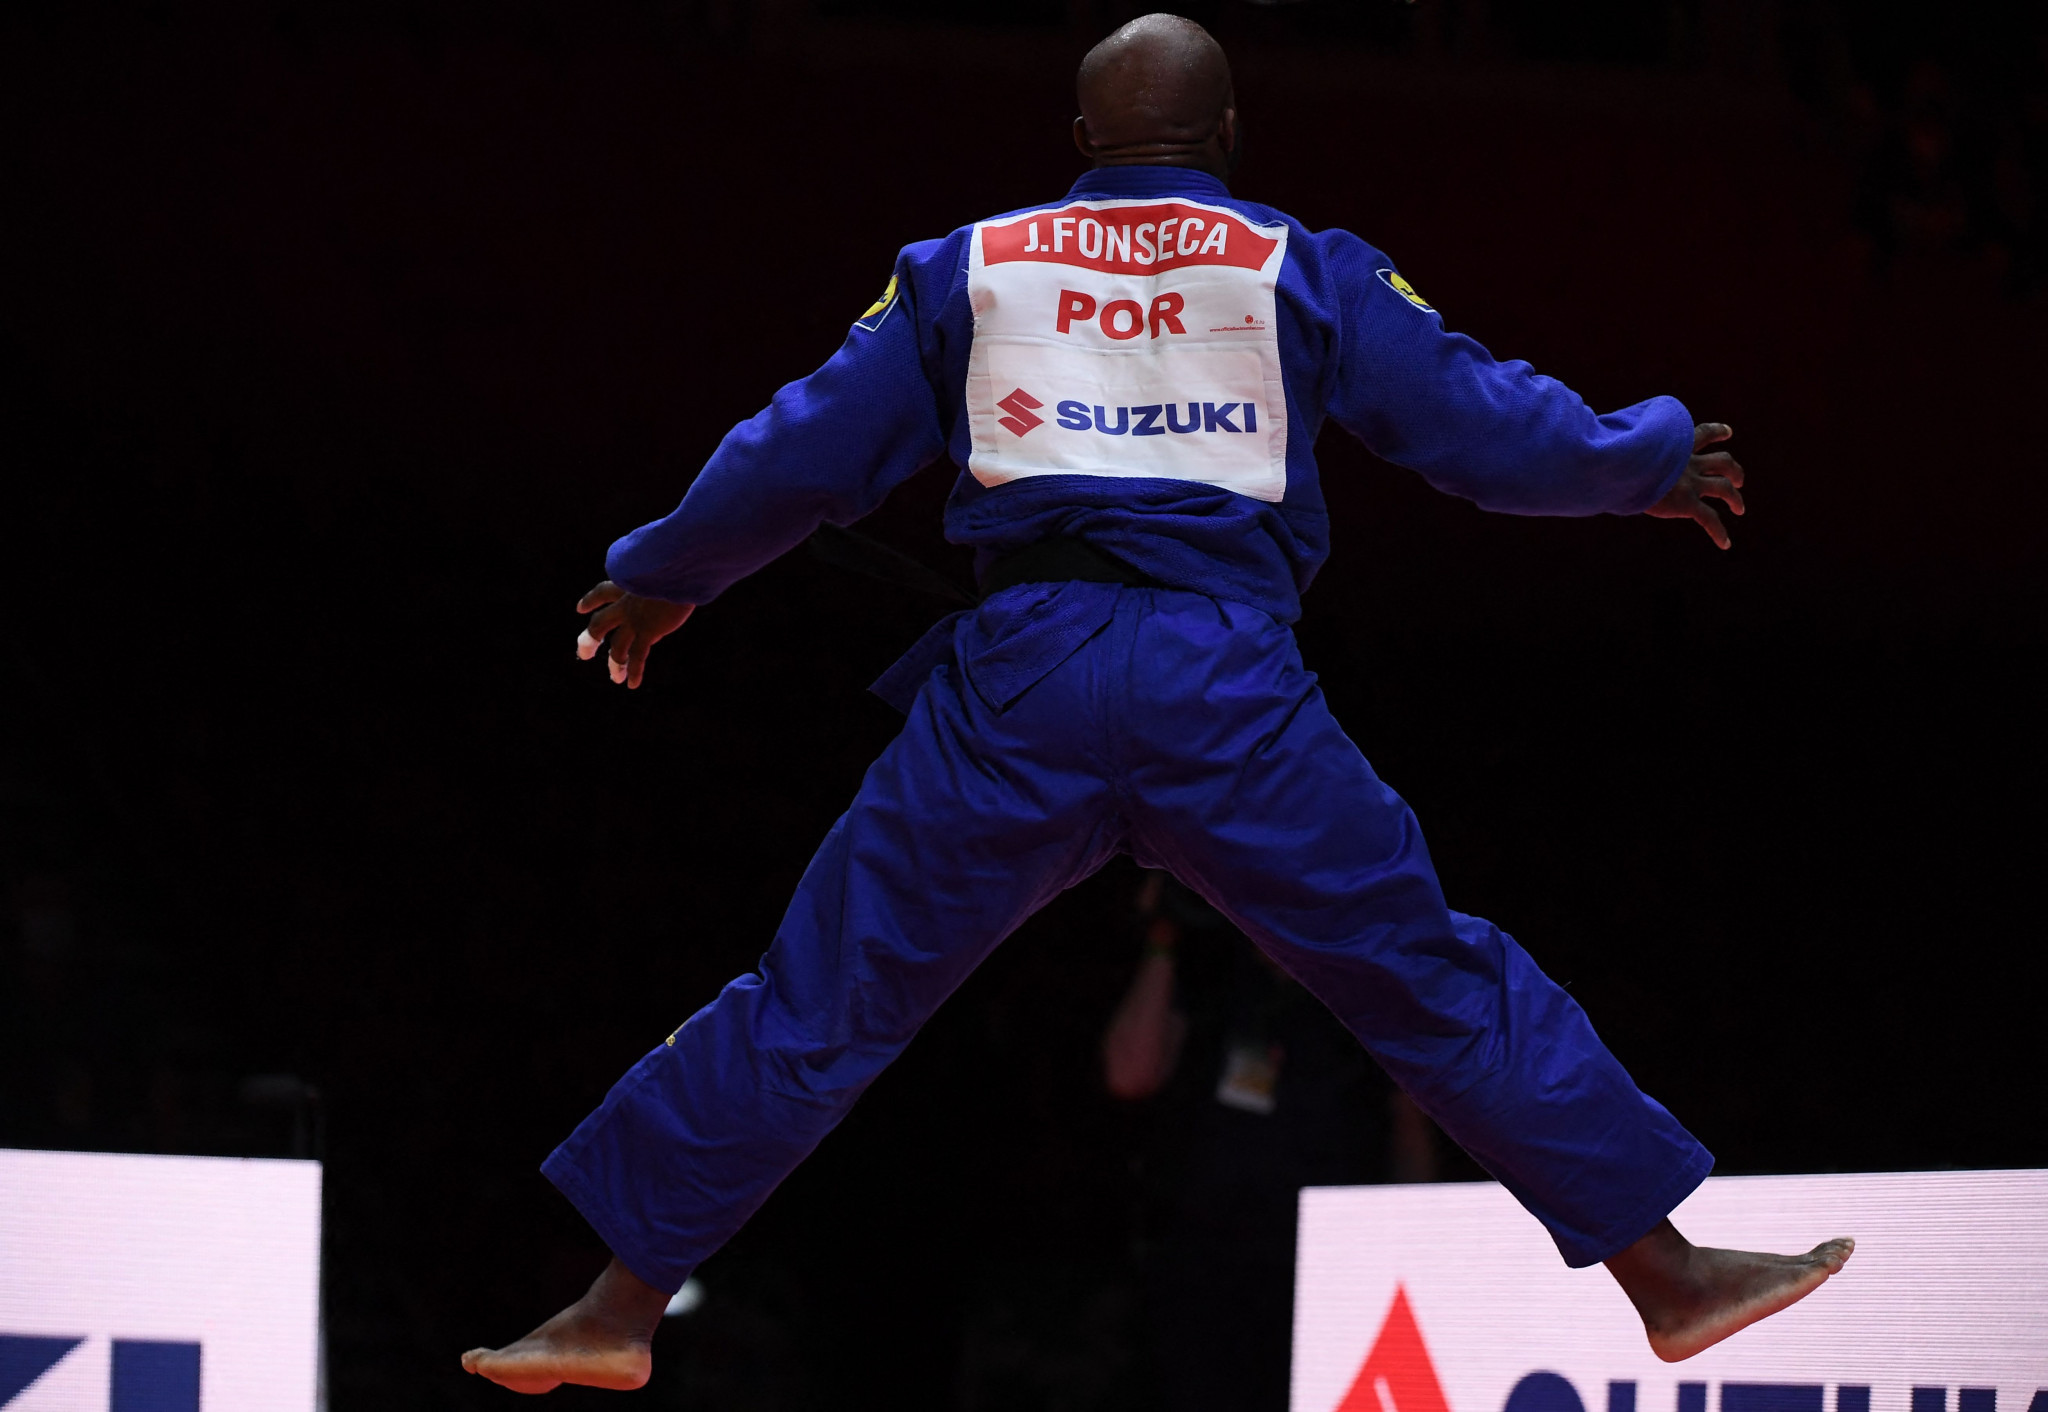 Jorge Fonseca celebrated with dancing following his men's under-100kg gold medal win ©Getty Images